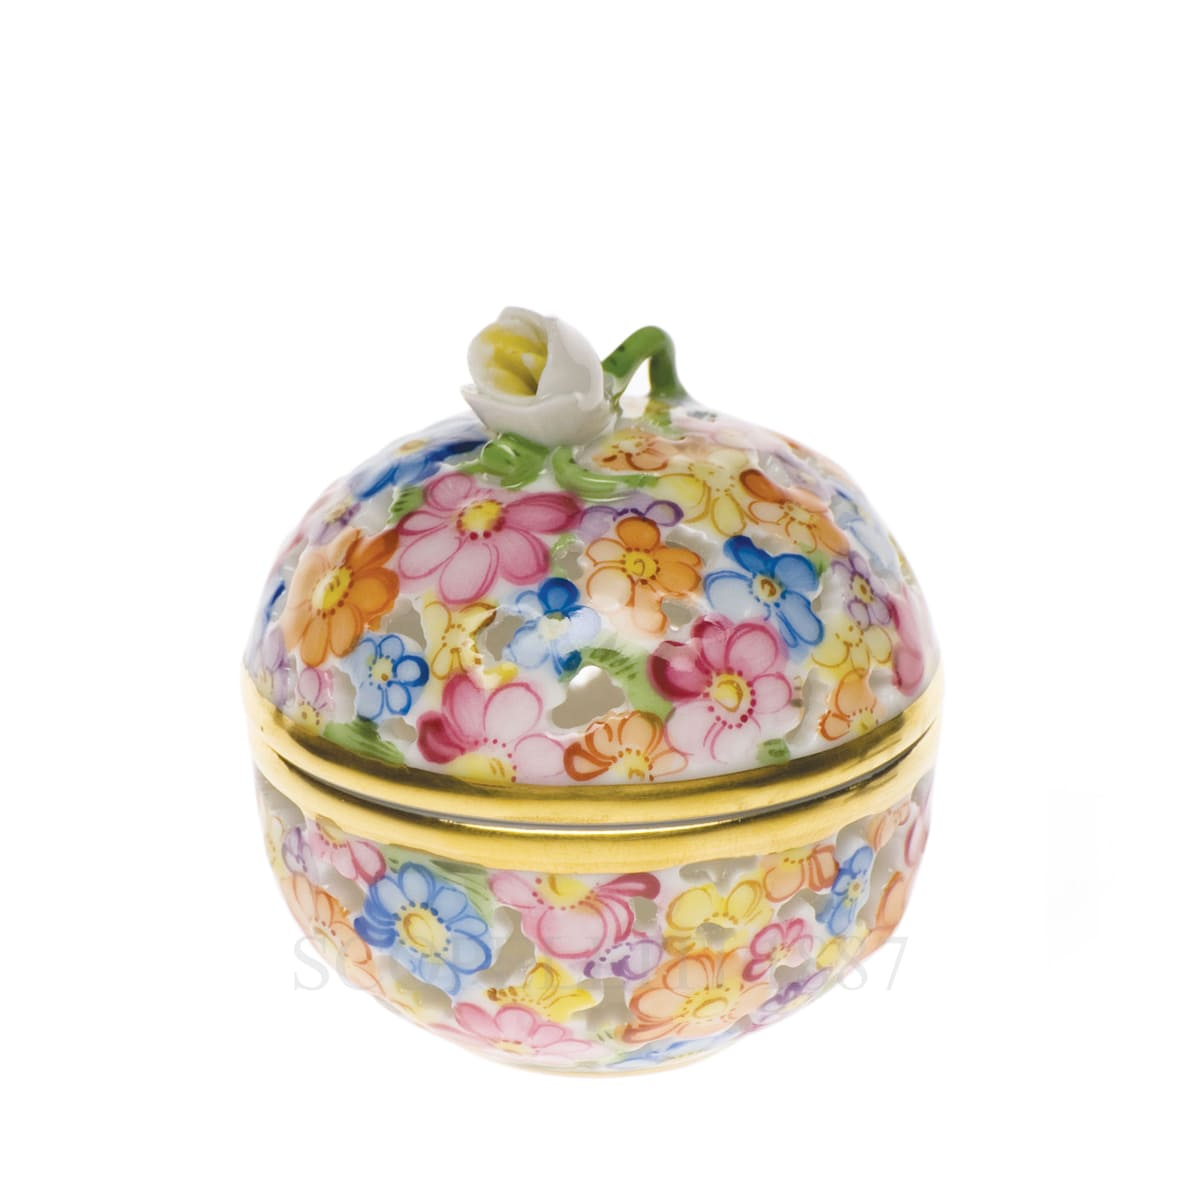 herend handpainted porcelain round box with rose